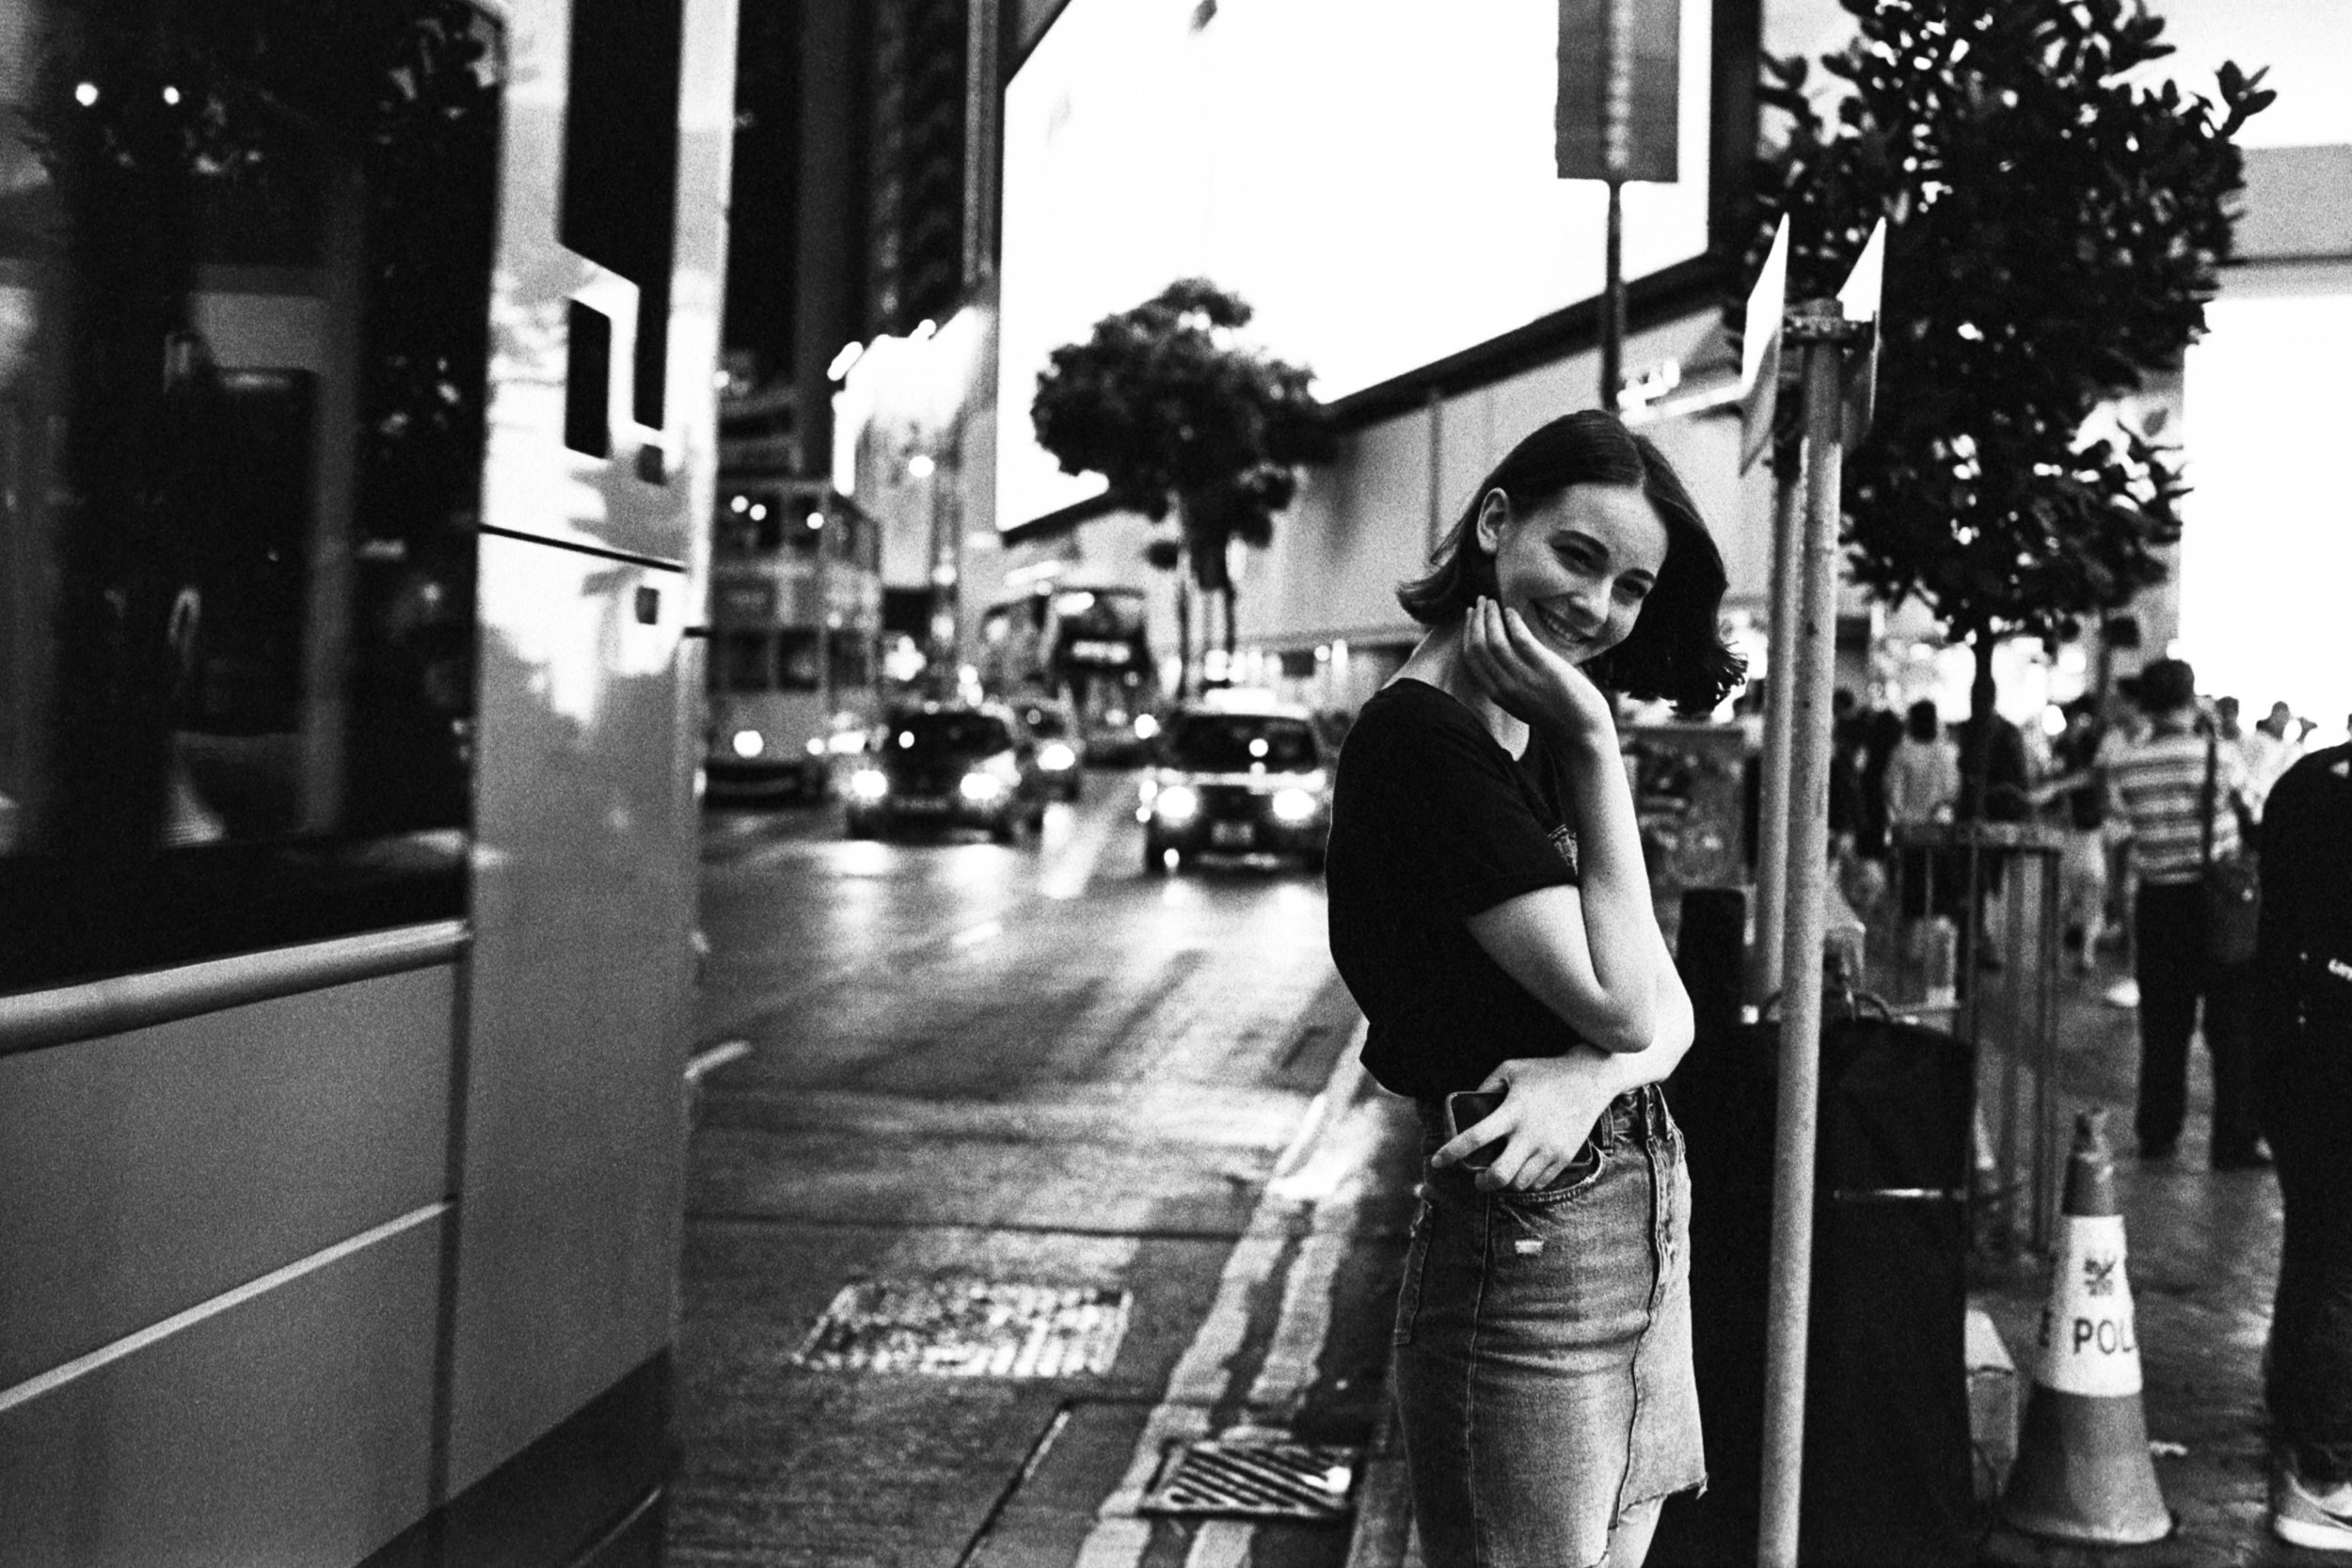 Fujifilm Neopan 1600 (Expired 2008, frozen since purchase) @ 35mm Focal Length